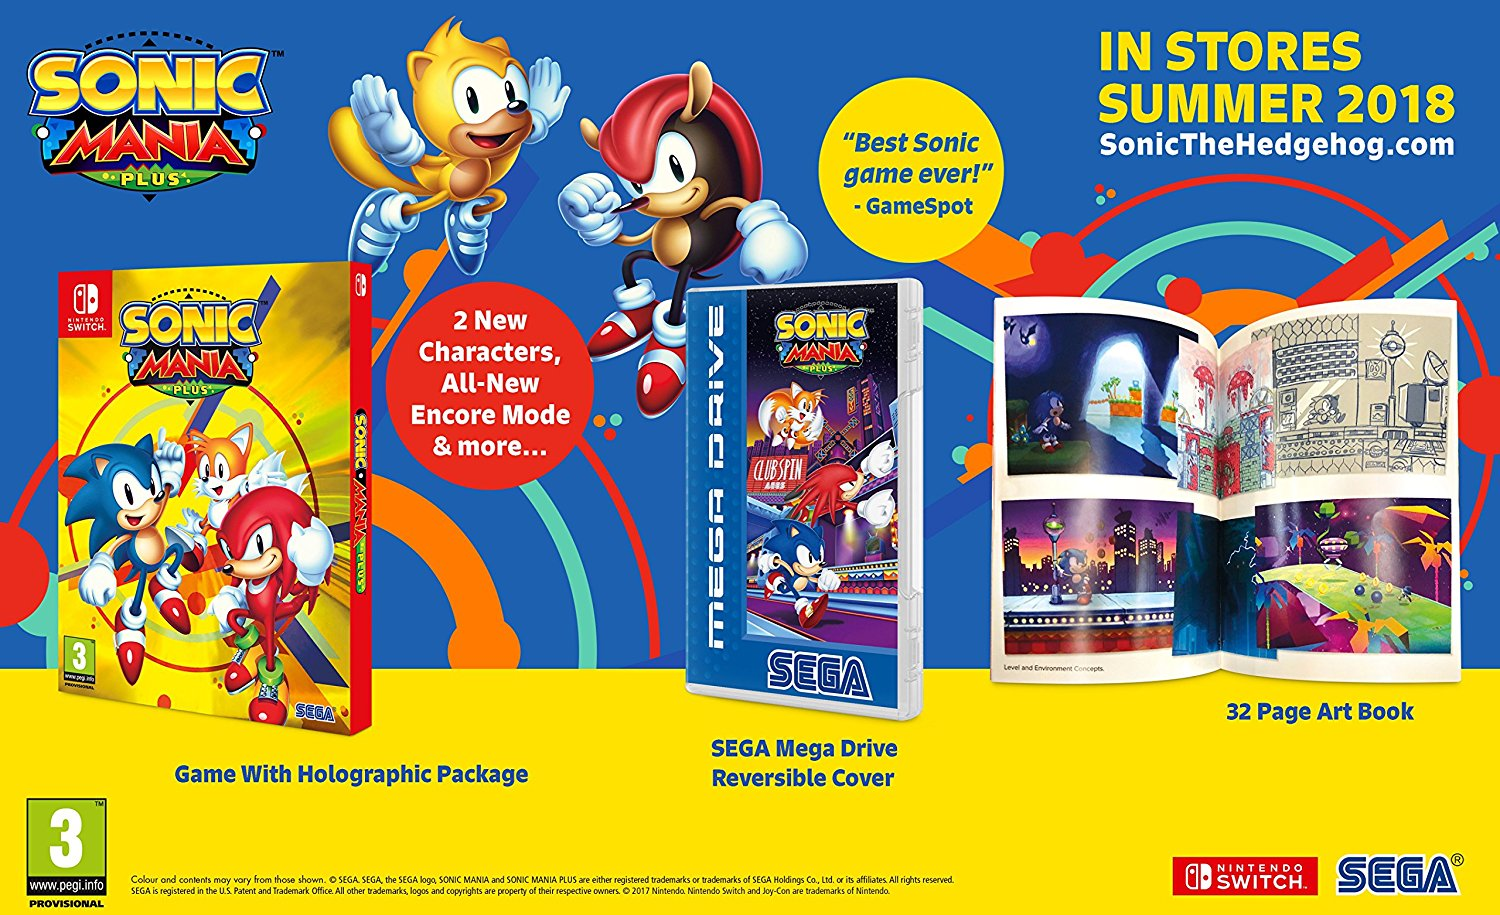 Nintendo Switch - Sonic Mania Plus